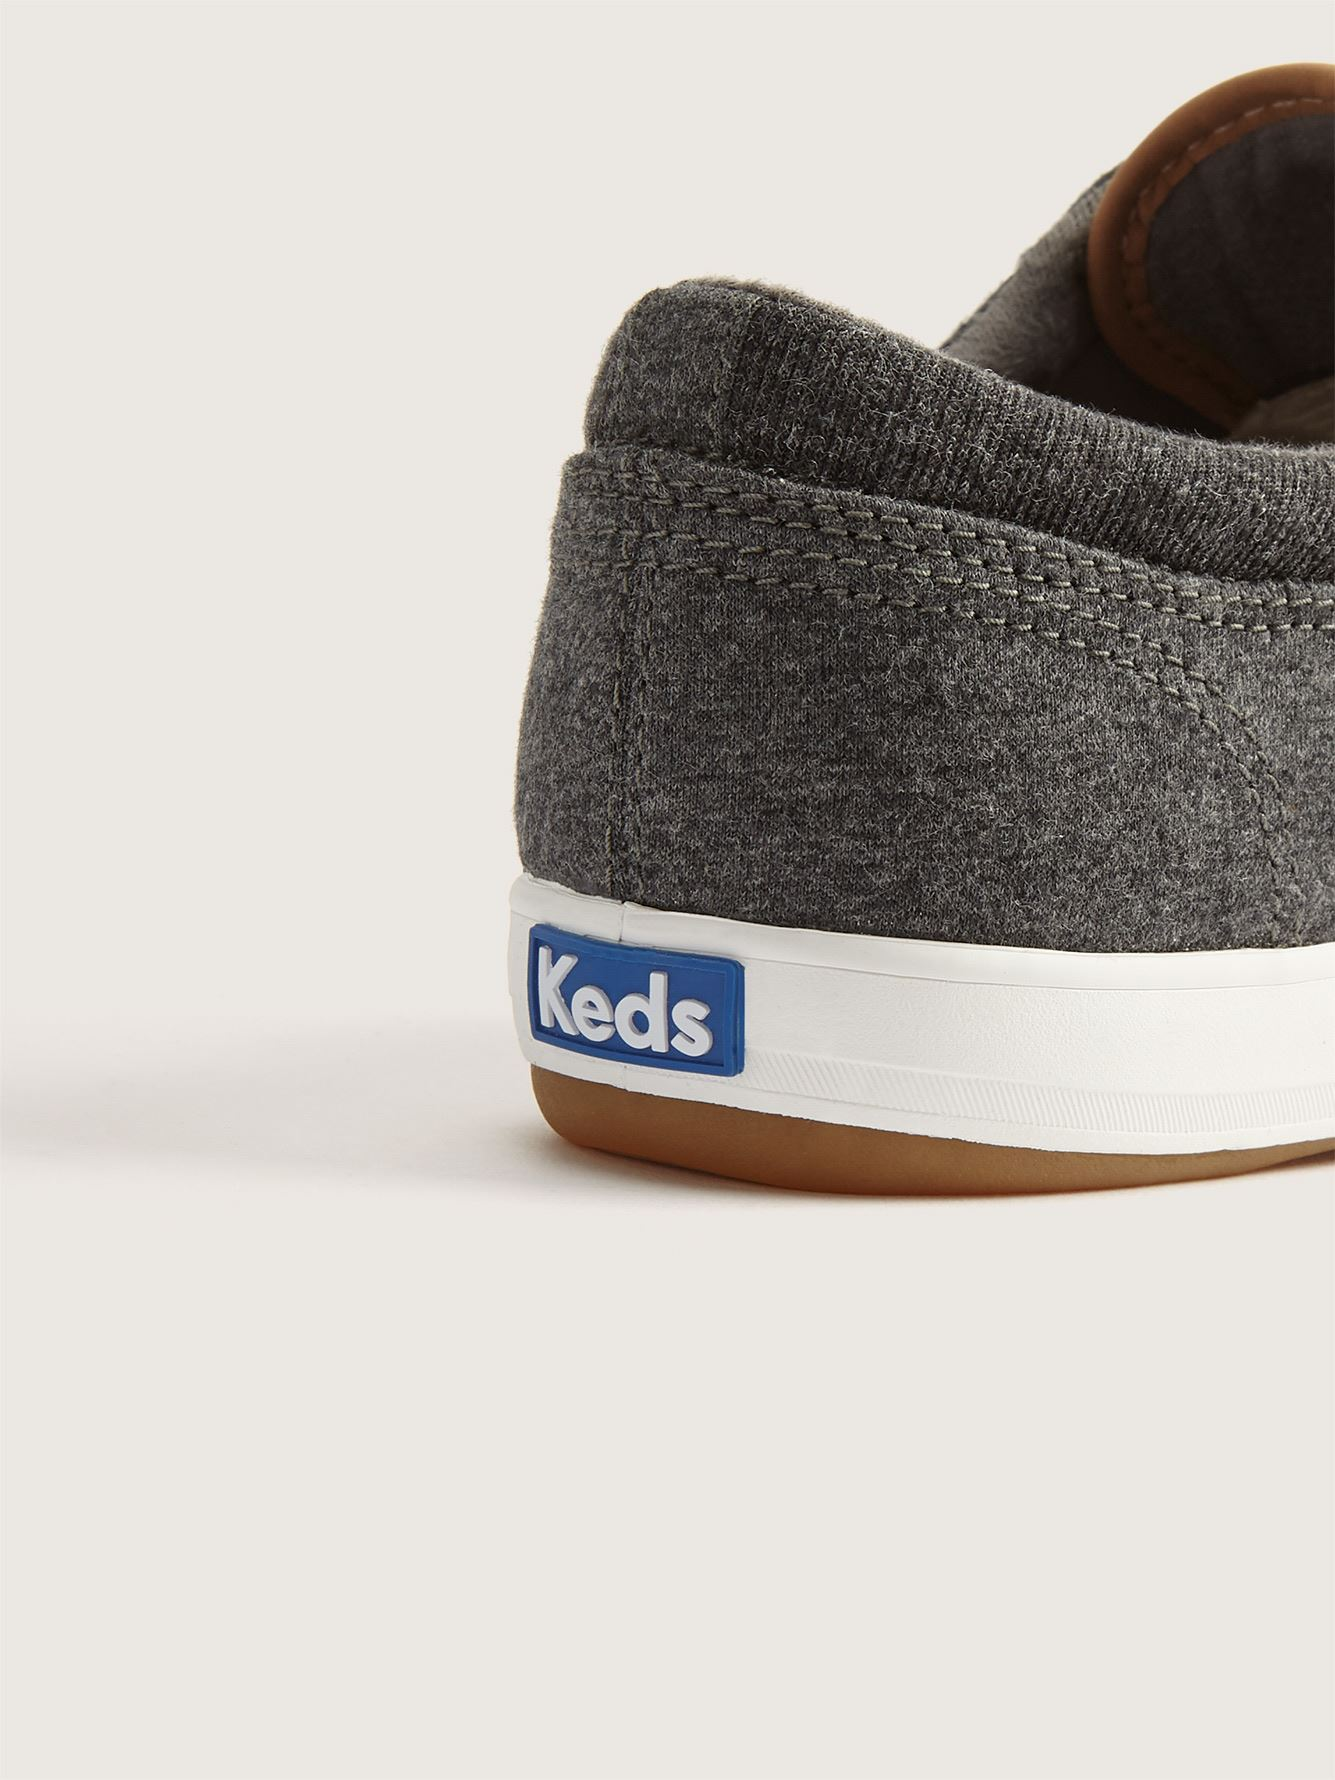 Wide Slip-On Heathered Sneakers - Keds